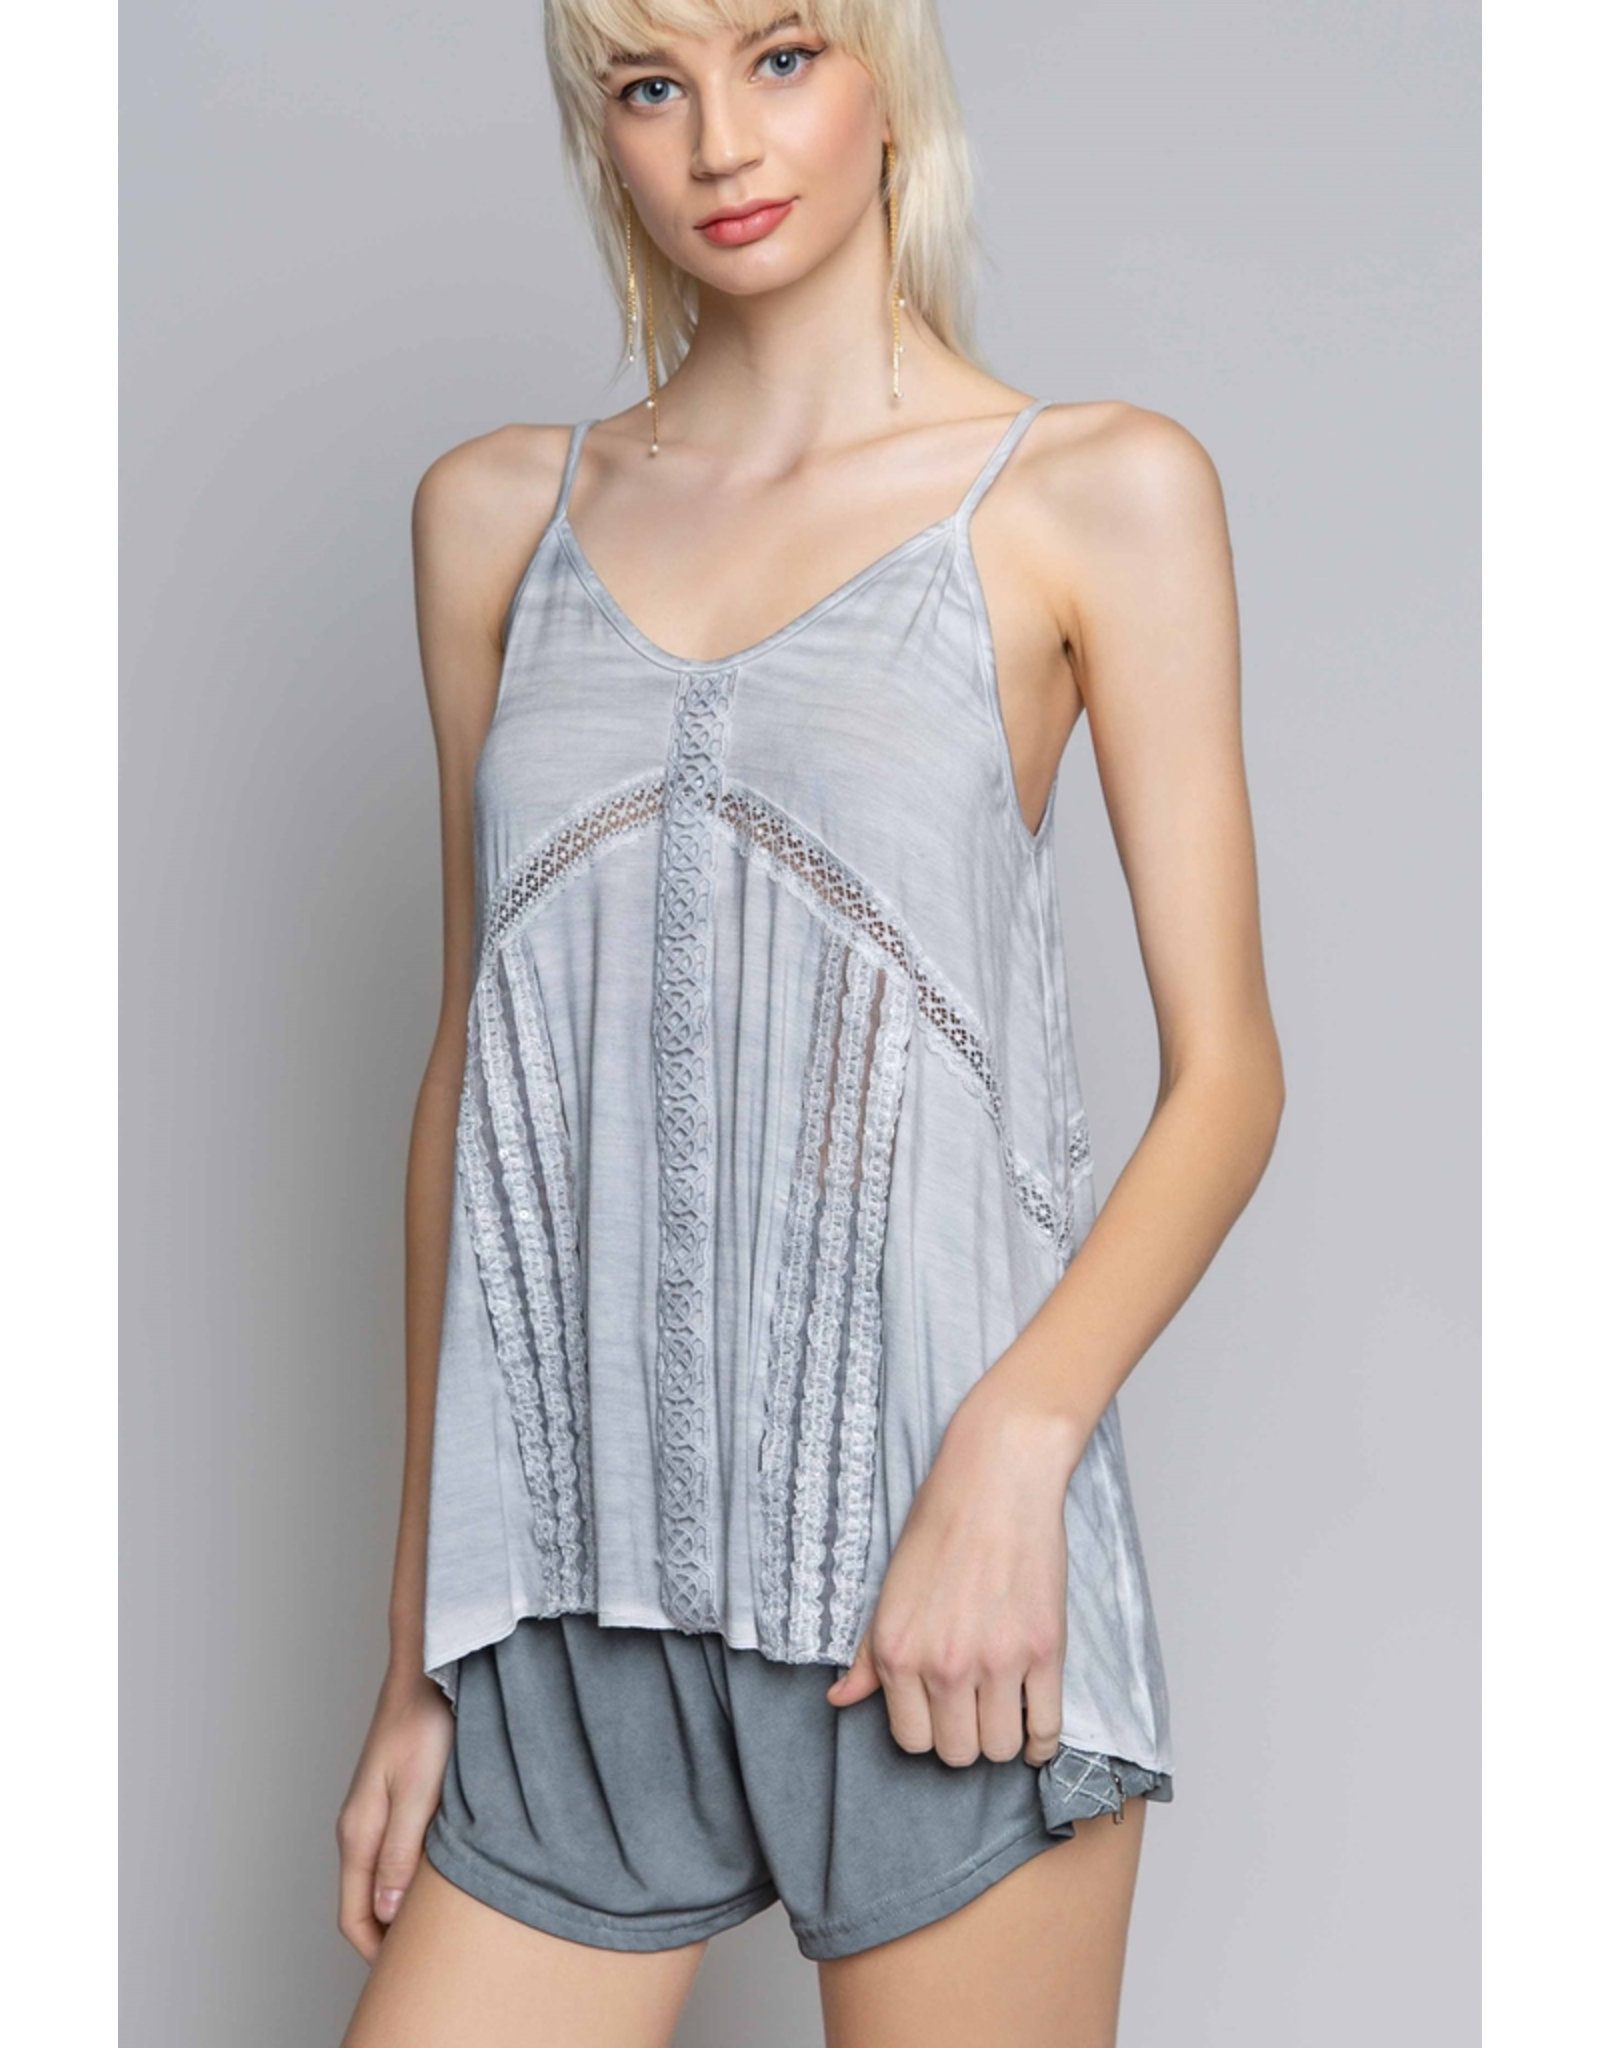 V-Neck Tank Top with Lace Trim